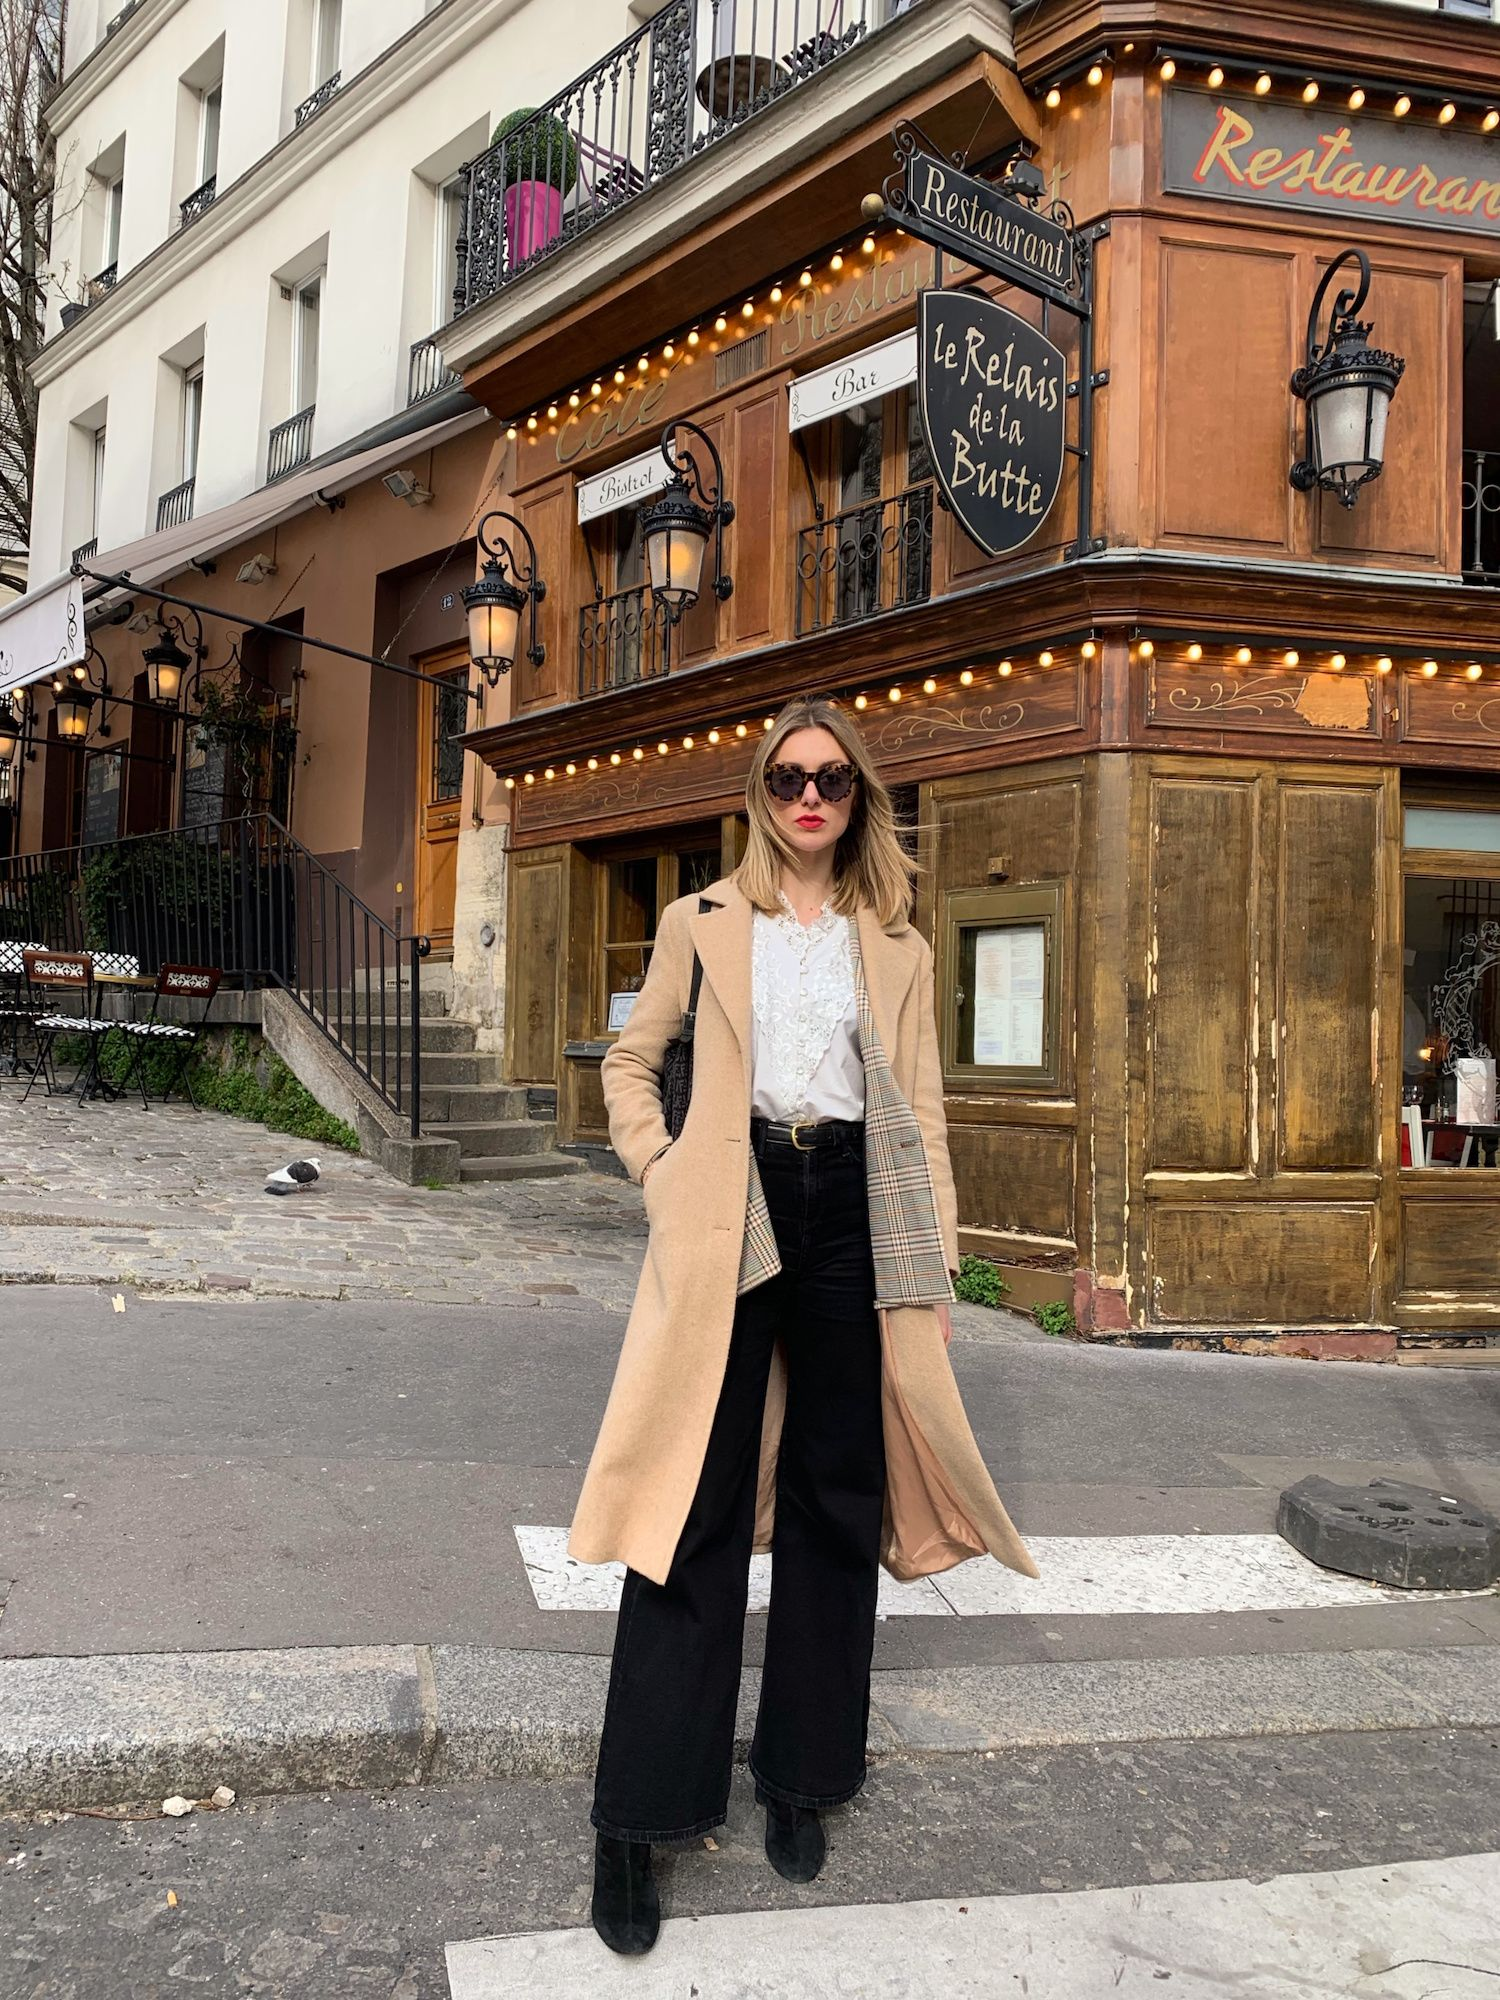 Lucie Rose Mahé, French Girl Style, Founder of Gavroche Vintage in Paris #frenchgirlstyle